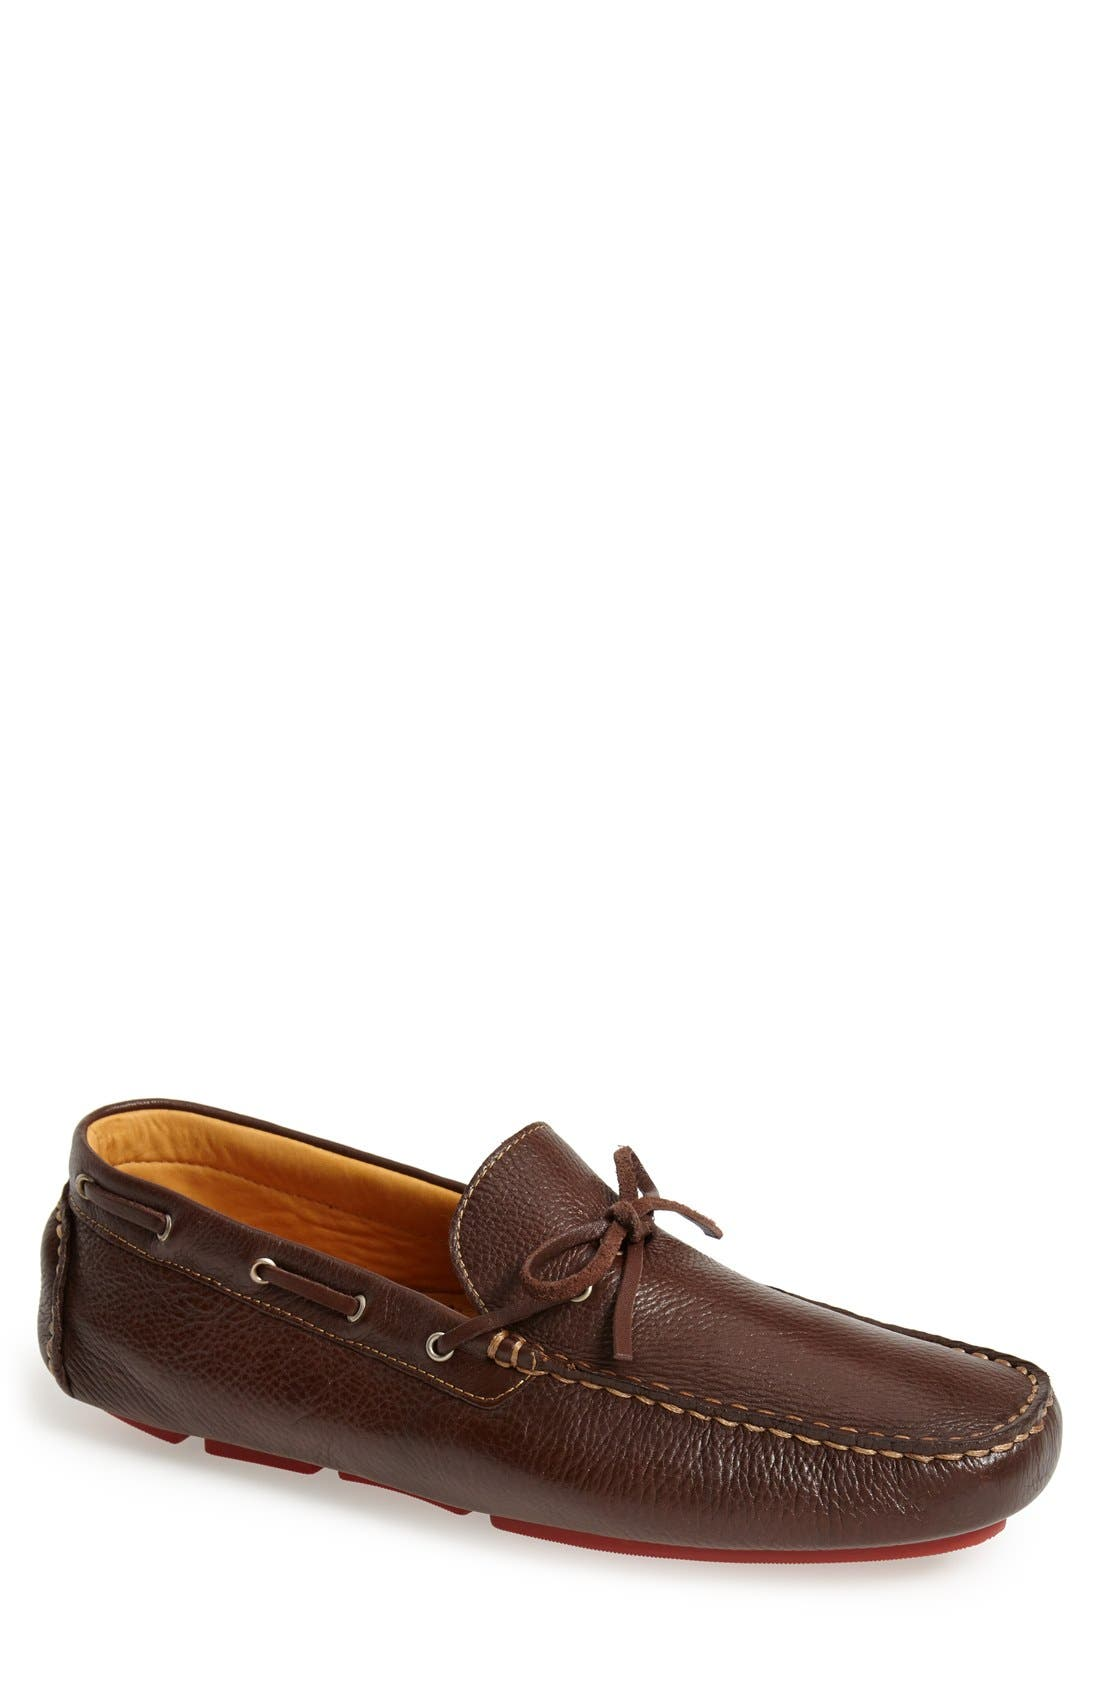 Alternate Image 1 Selected - Sandro Moscoloni 'Perry' Driving Shoe (Men)